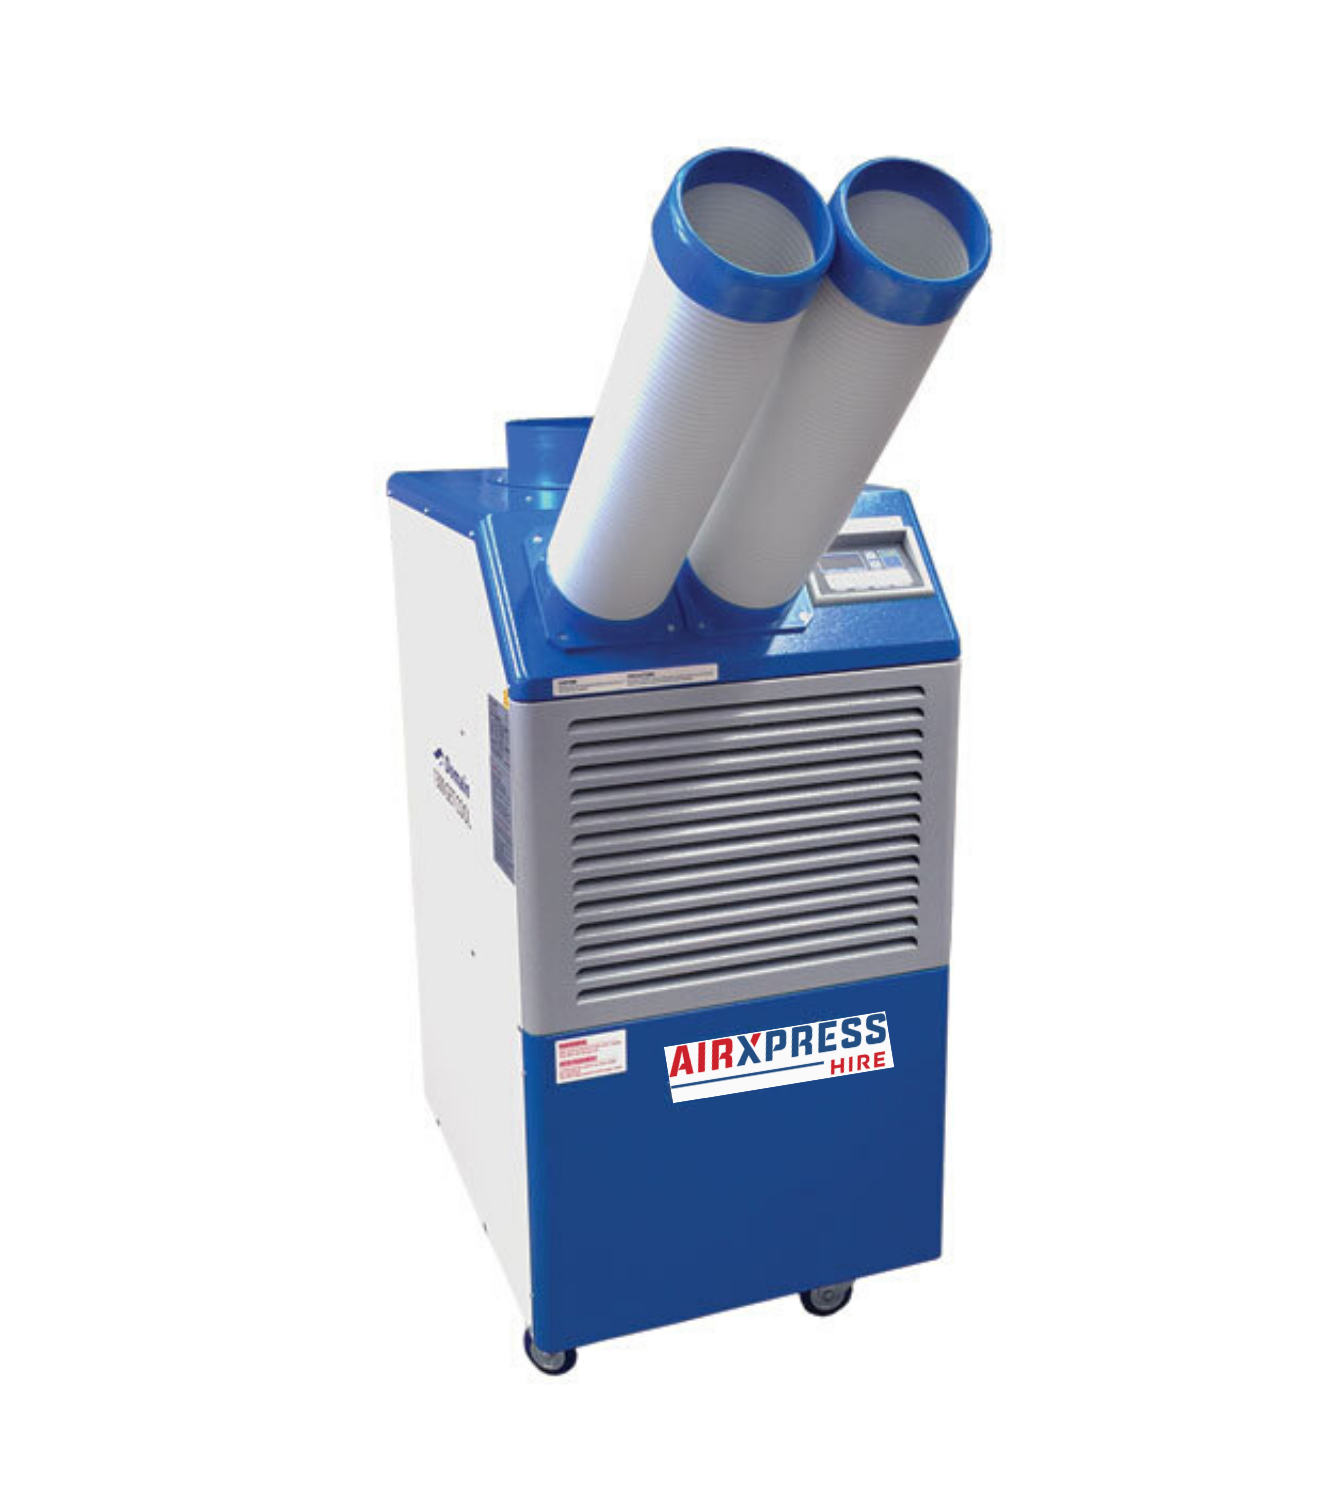 6 5kw Industrial Portable Air Conditioner Airxpress Hire